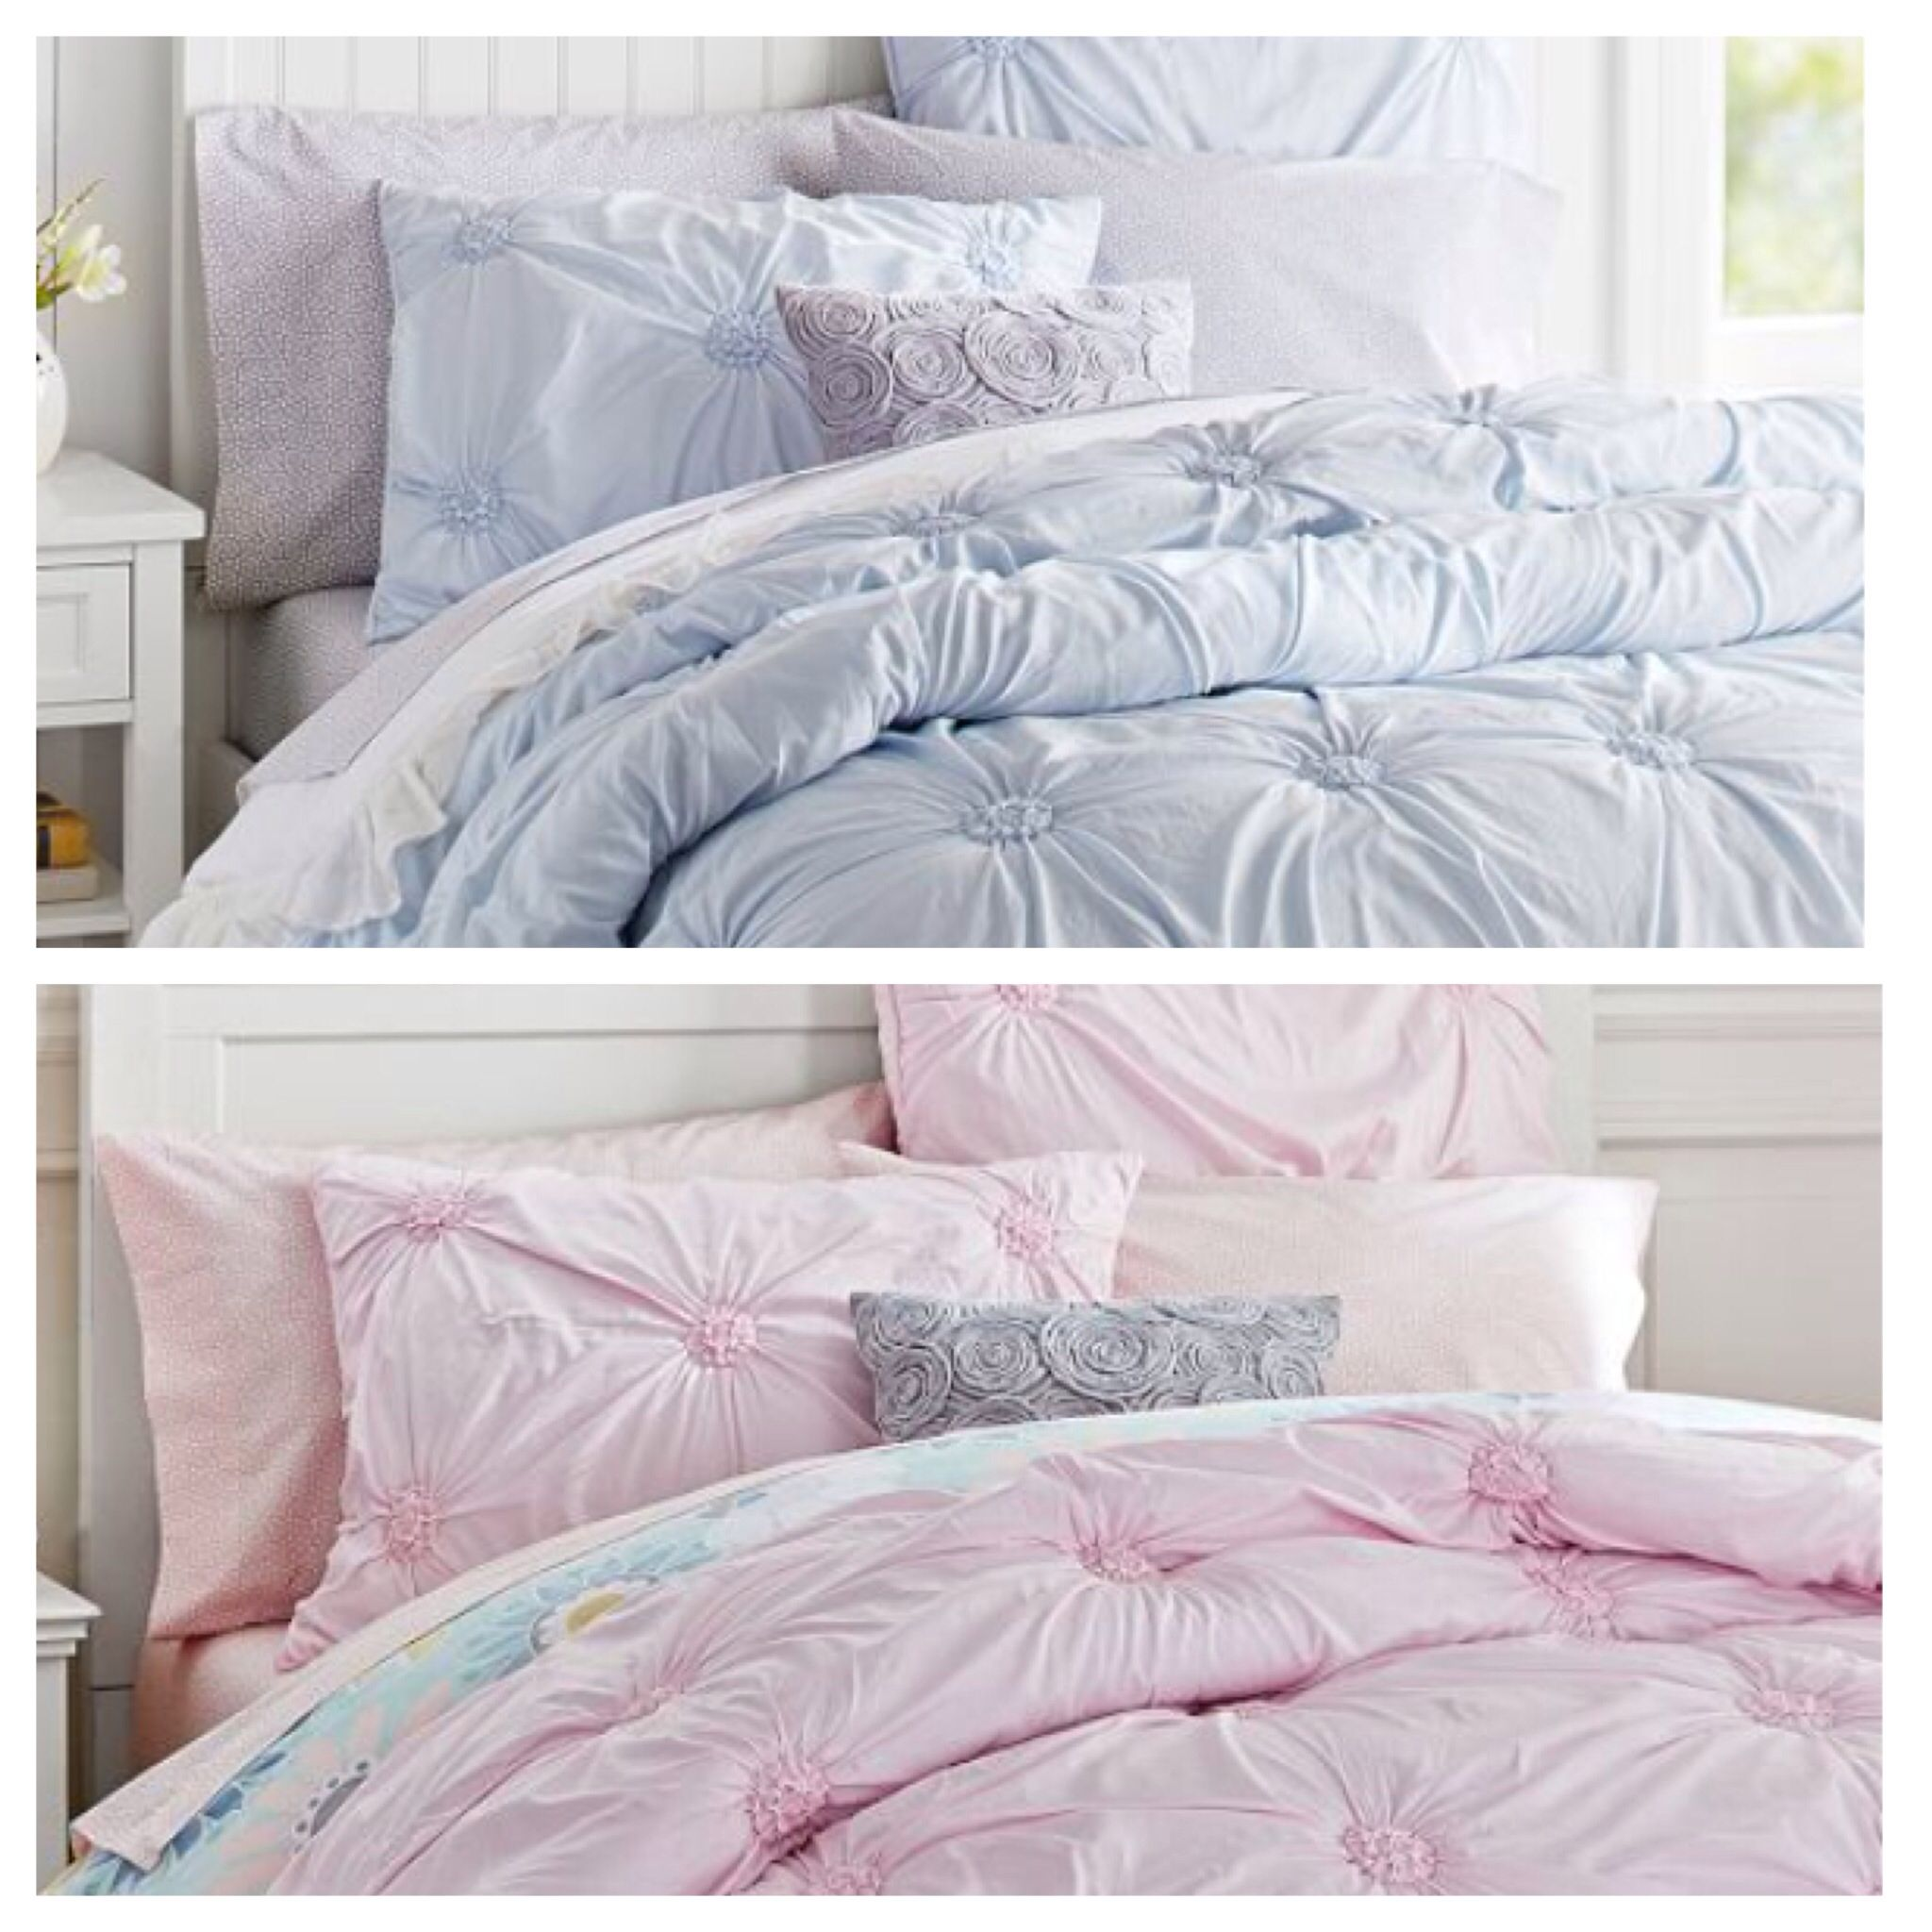 PB Love - bedding in frost blue or blush